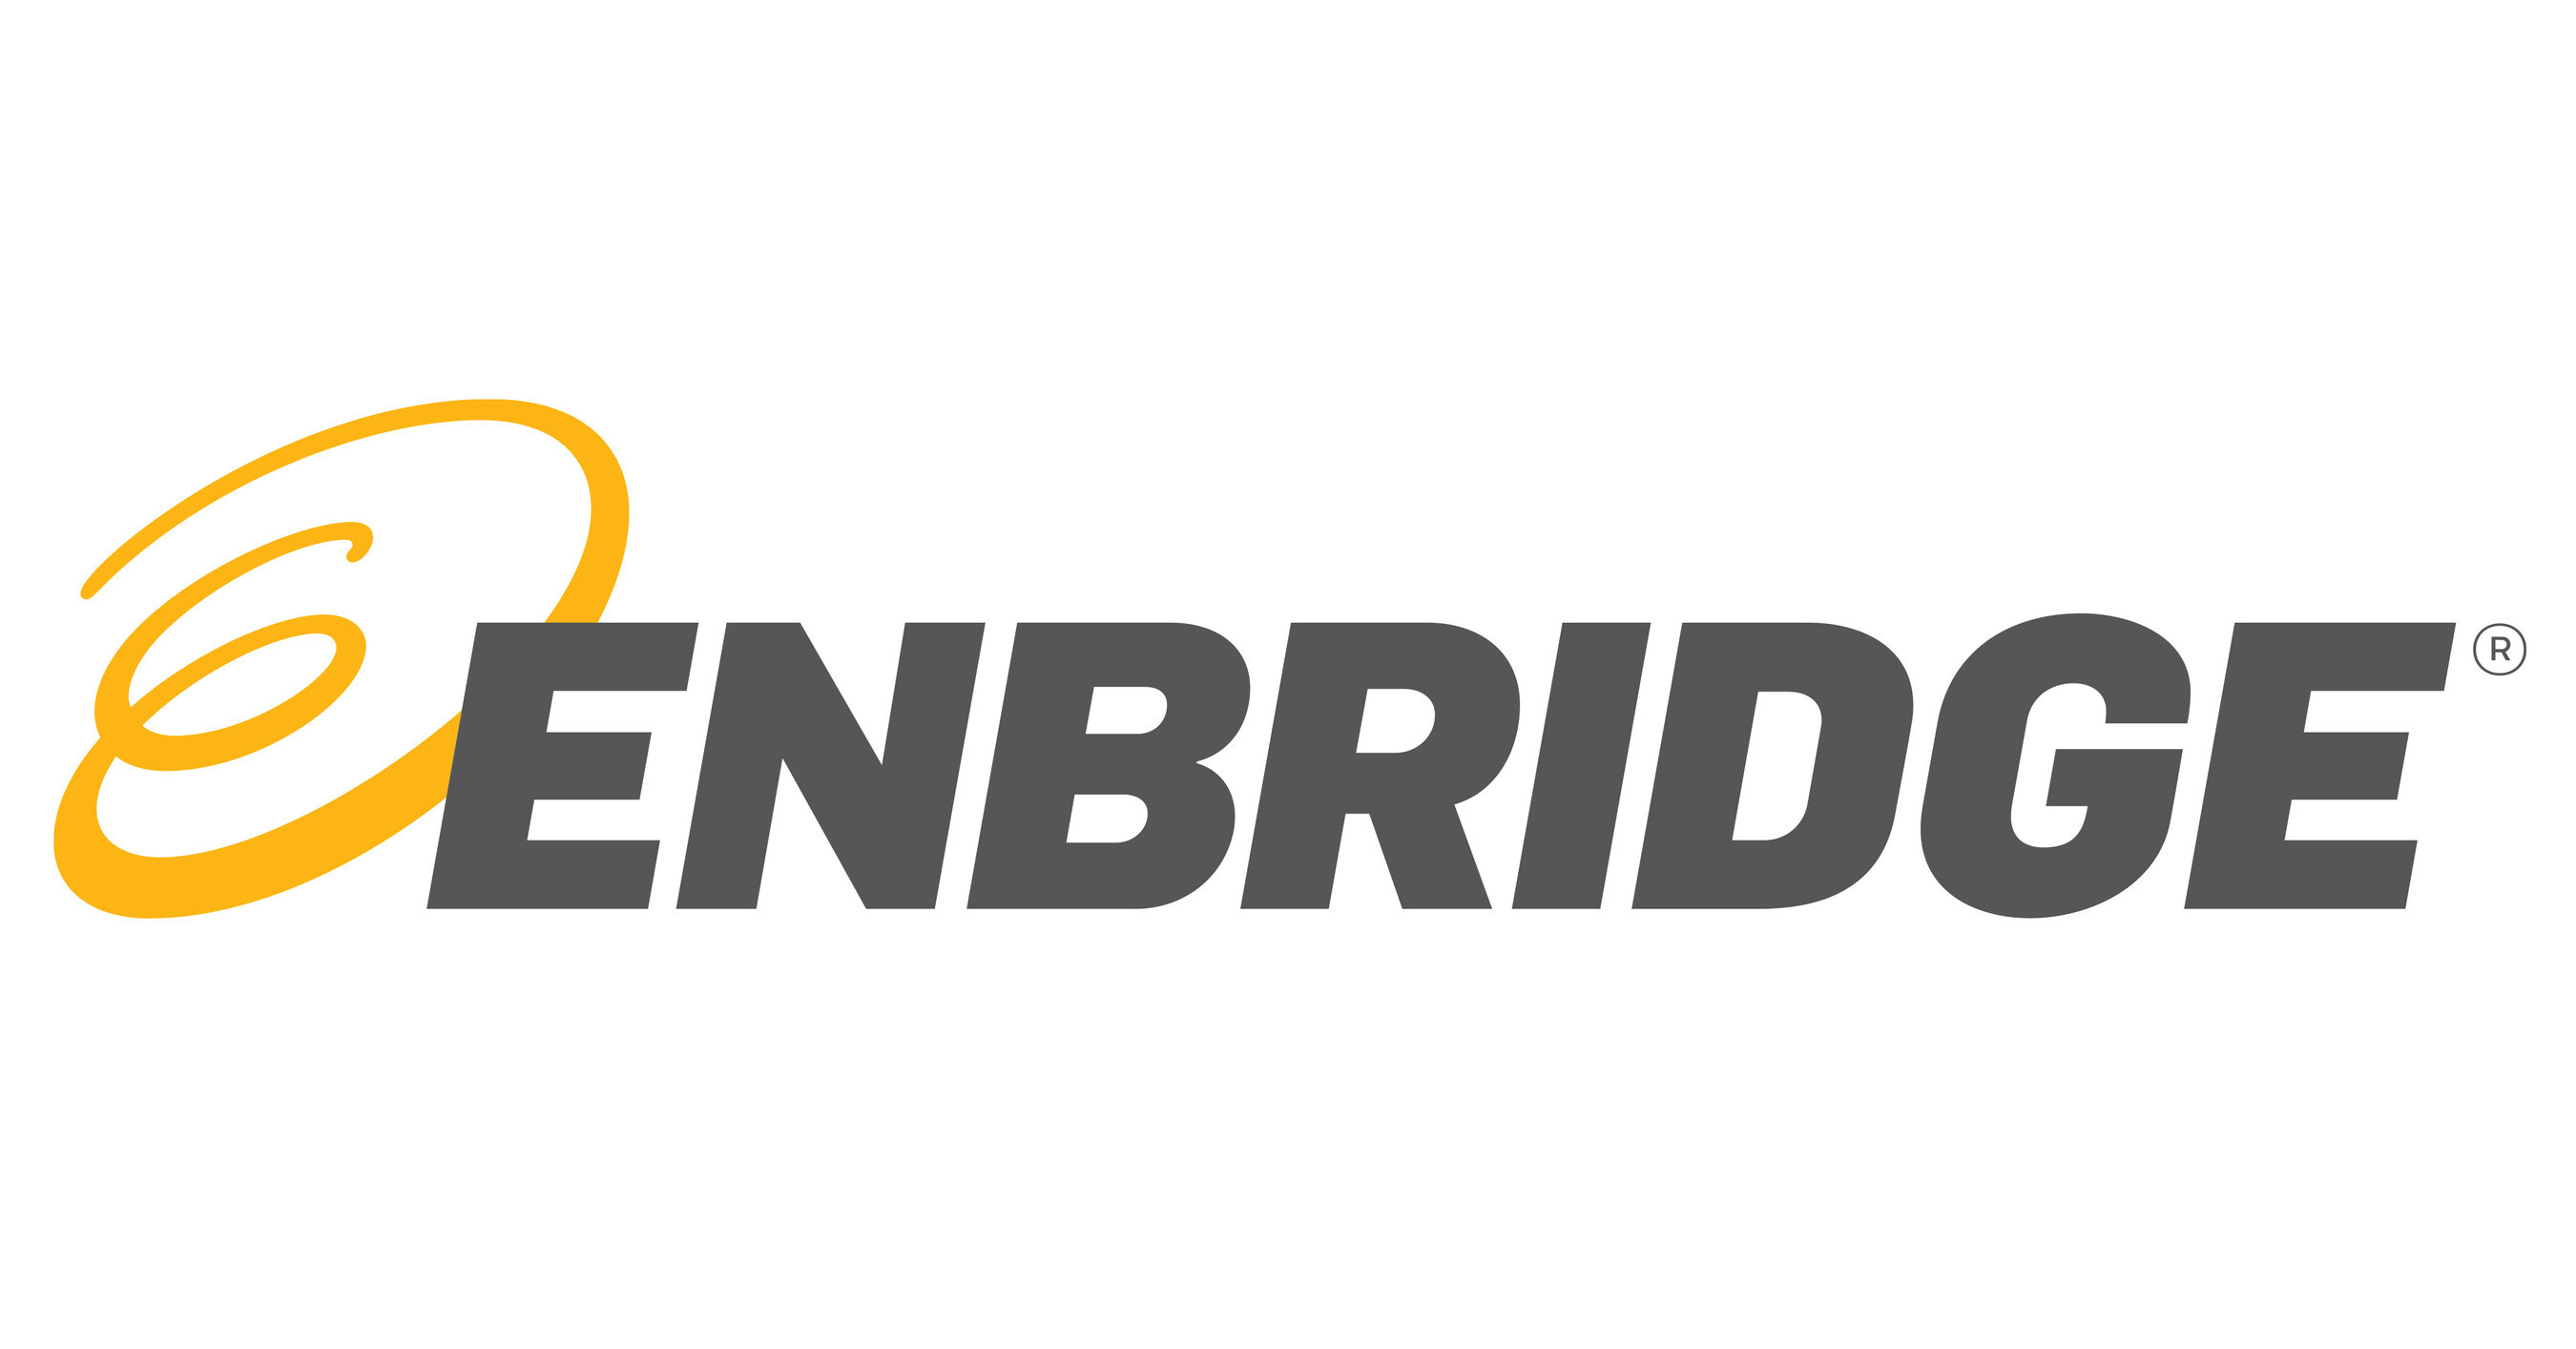 Enbridge Opens in new window